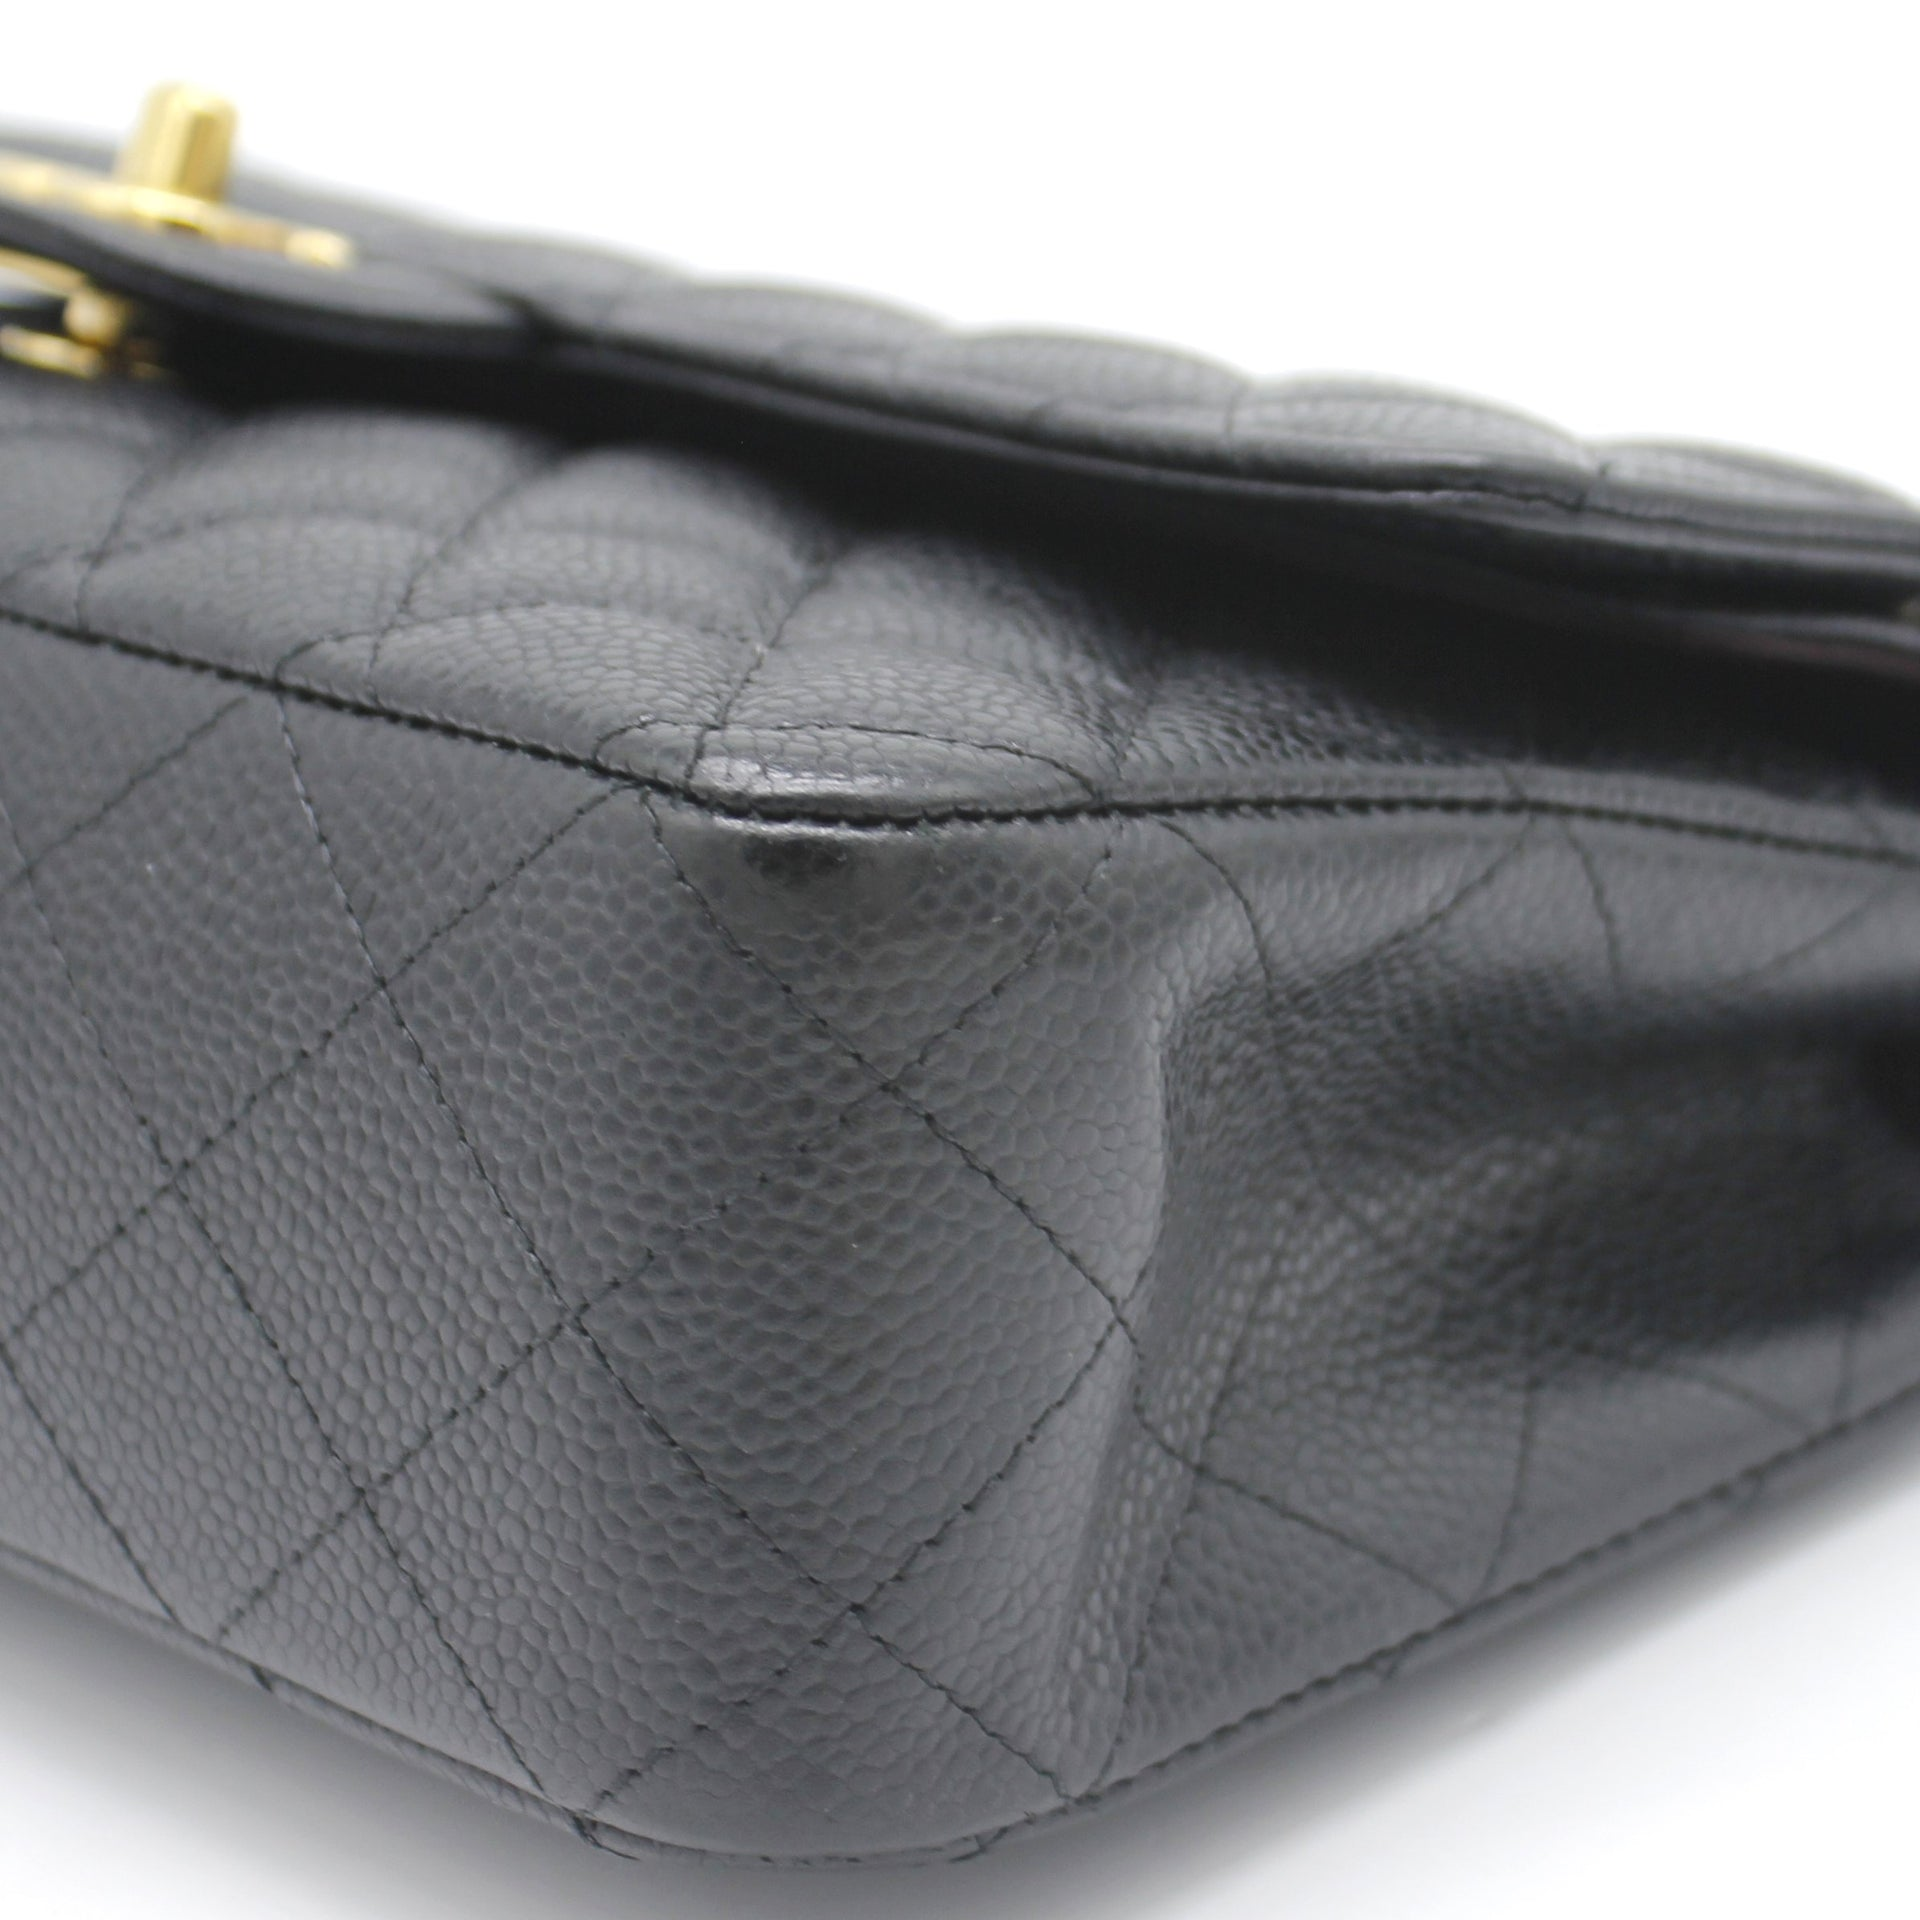 Black Quilted Caviar Leather Classic Double Flap Bag